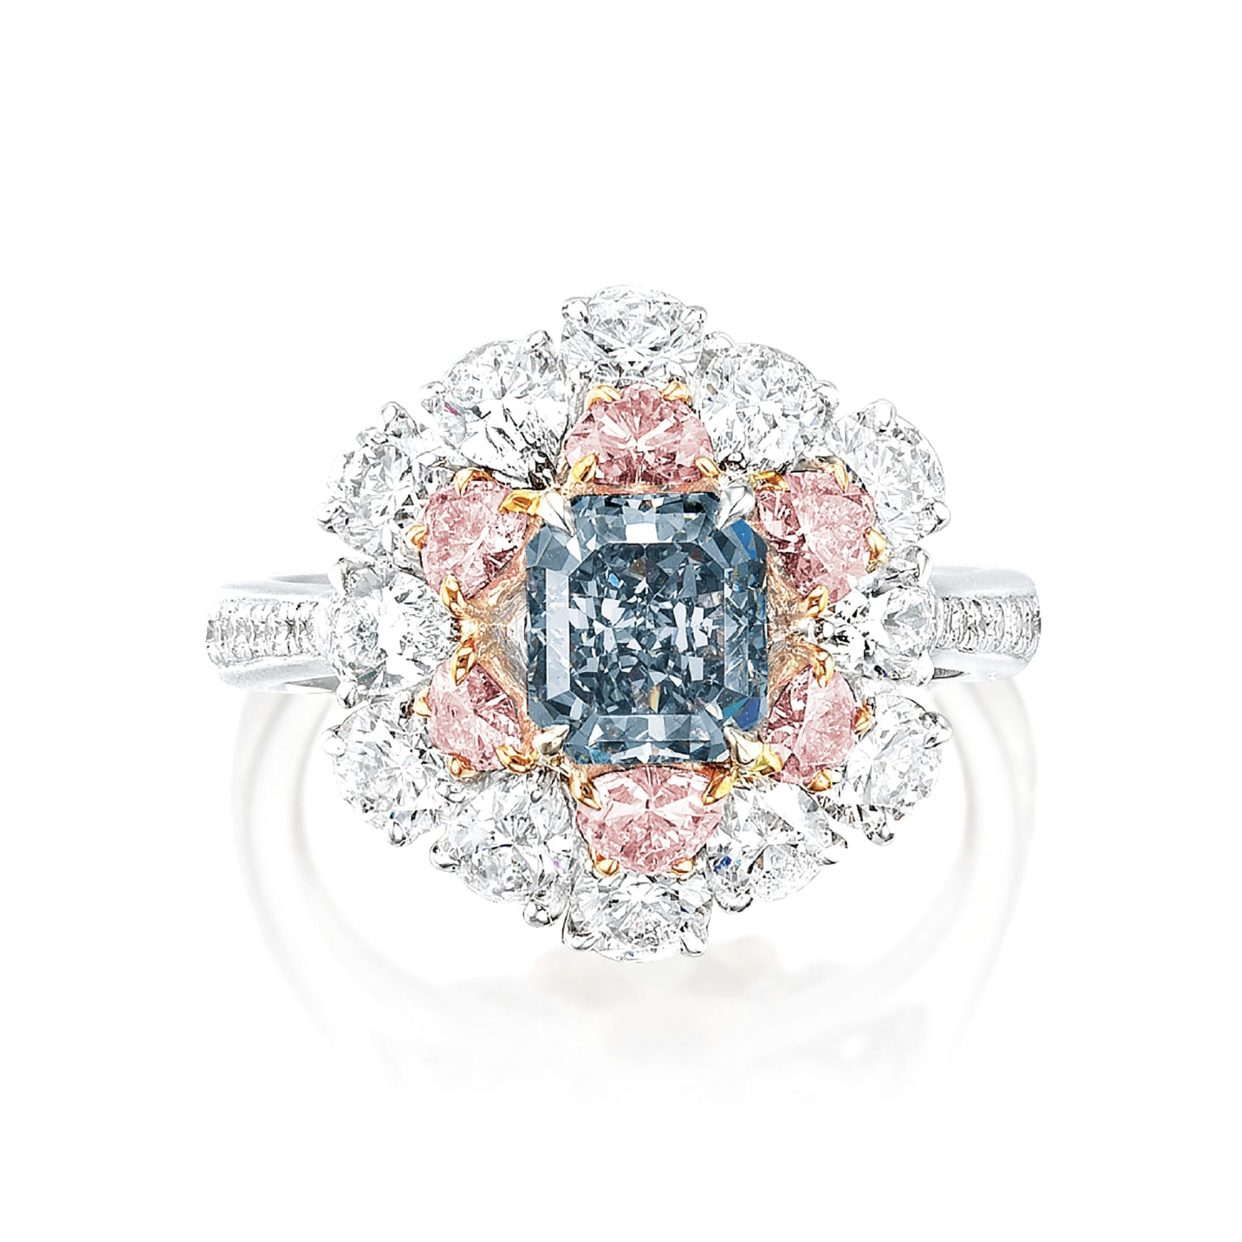 Phillips Hong Kong Jewels And Jadeite Auction Showcasing Fine Jewelry Pieces